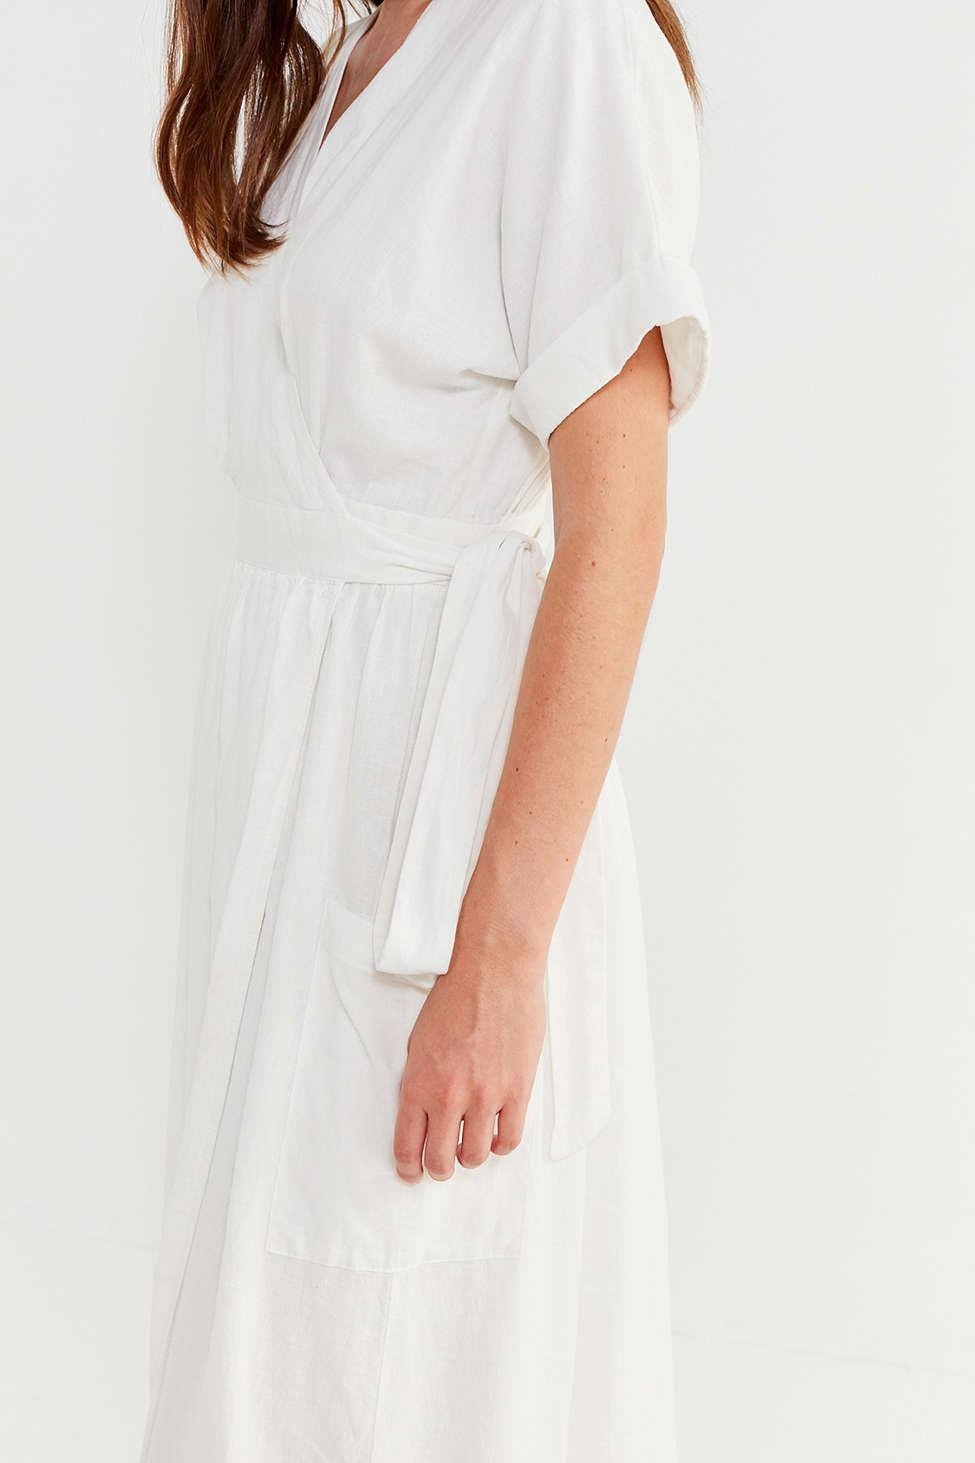 0f42b7f550 Gallery. Previously sold at  Urban Outfitters · Women s White Linen Dresses  ...